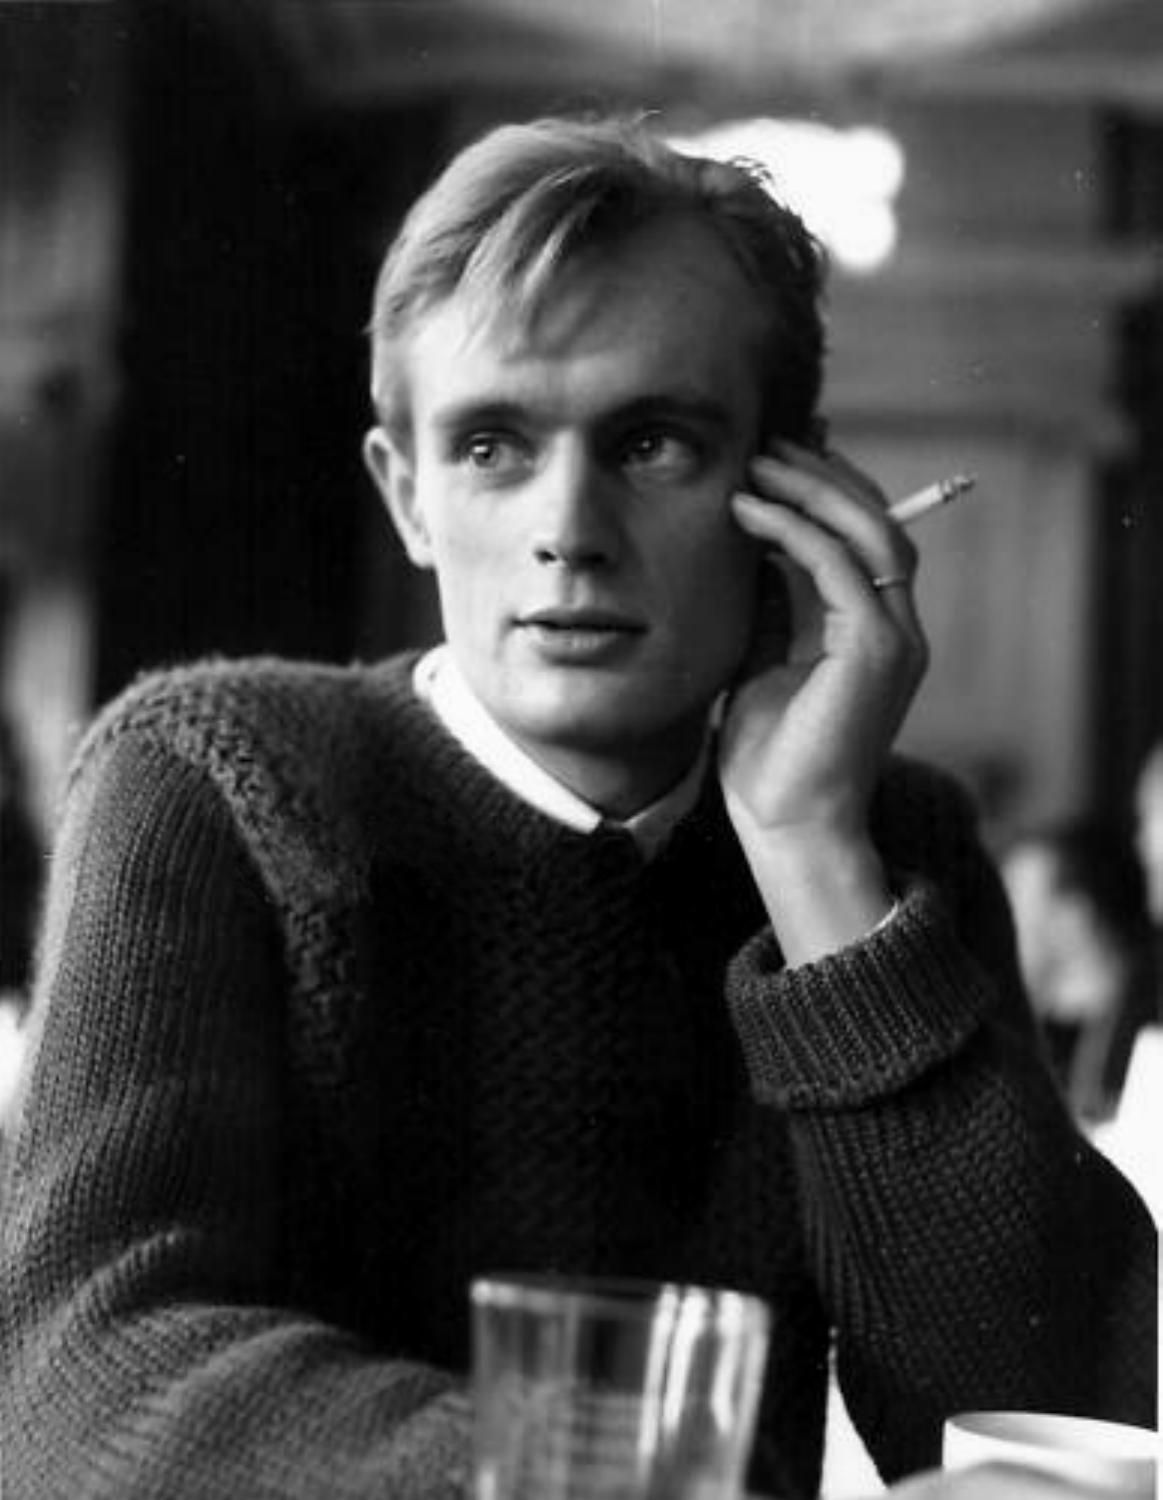 David McCallum smoking a cigarette (or weed)